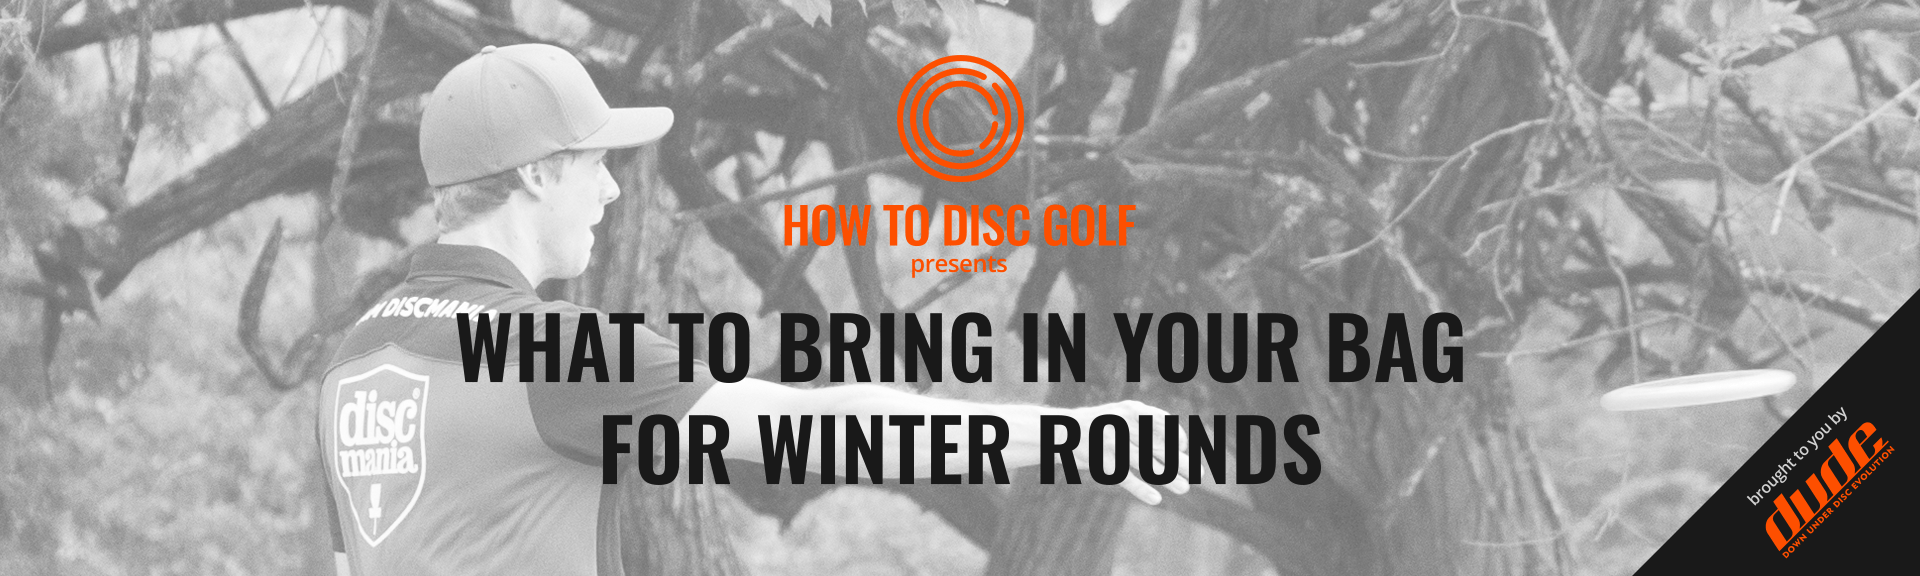 Dude Clothing HOW TO DISC GOLF What to bring in your bag for winter rounds